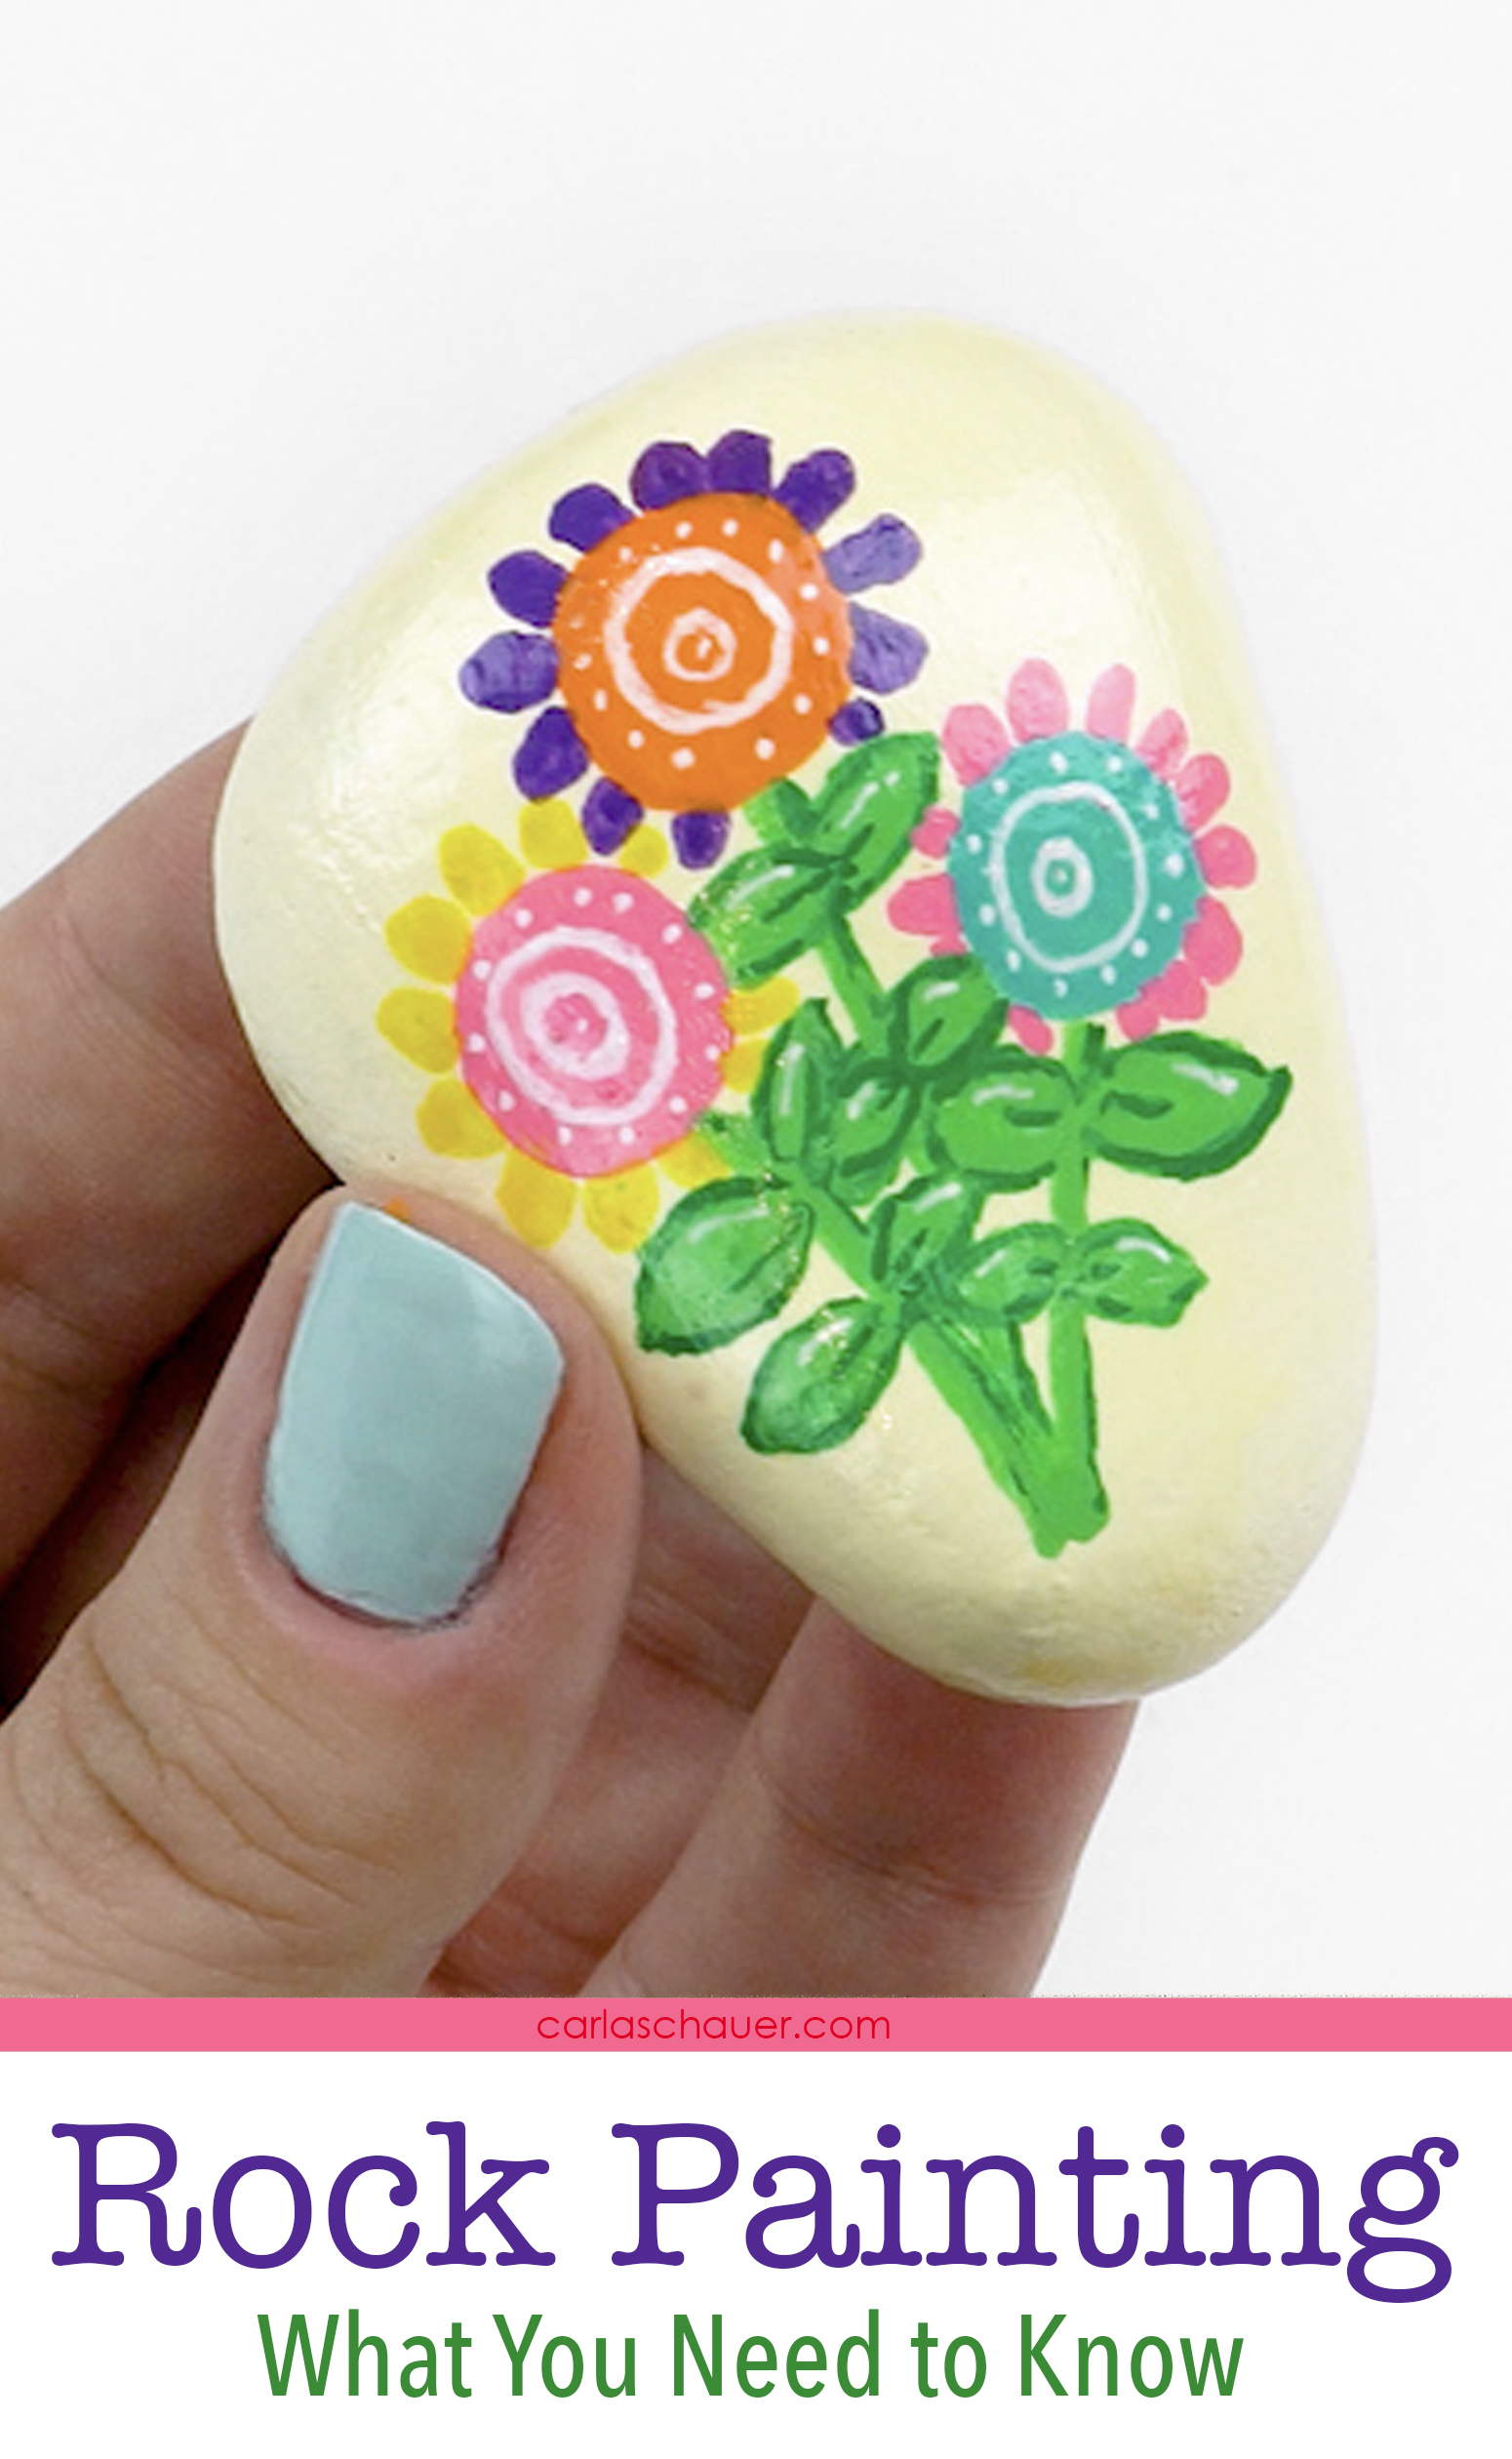 Hand holding cream painted rock with colorful flower design.